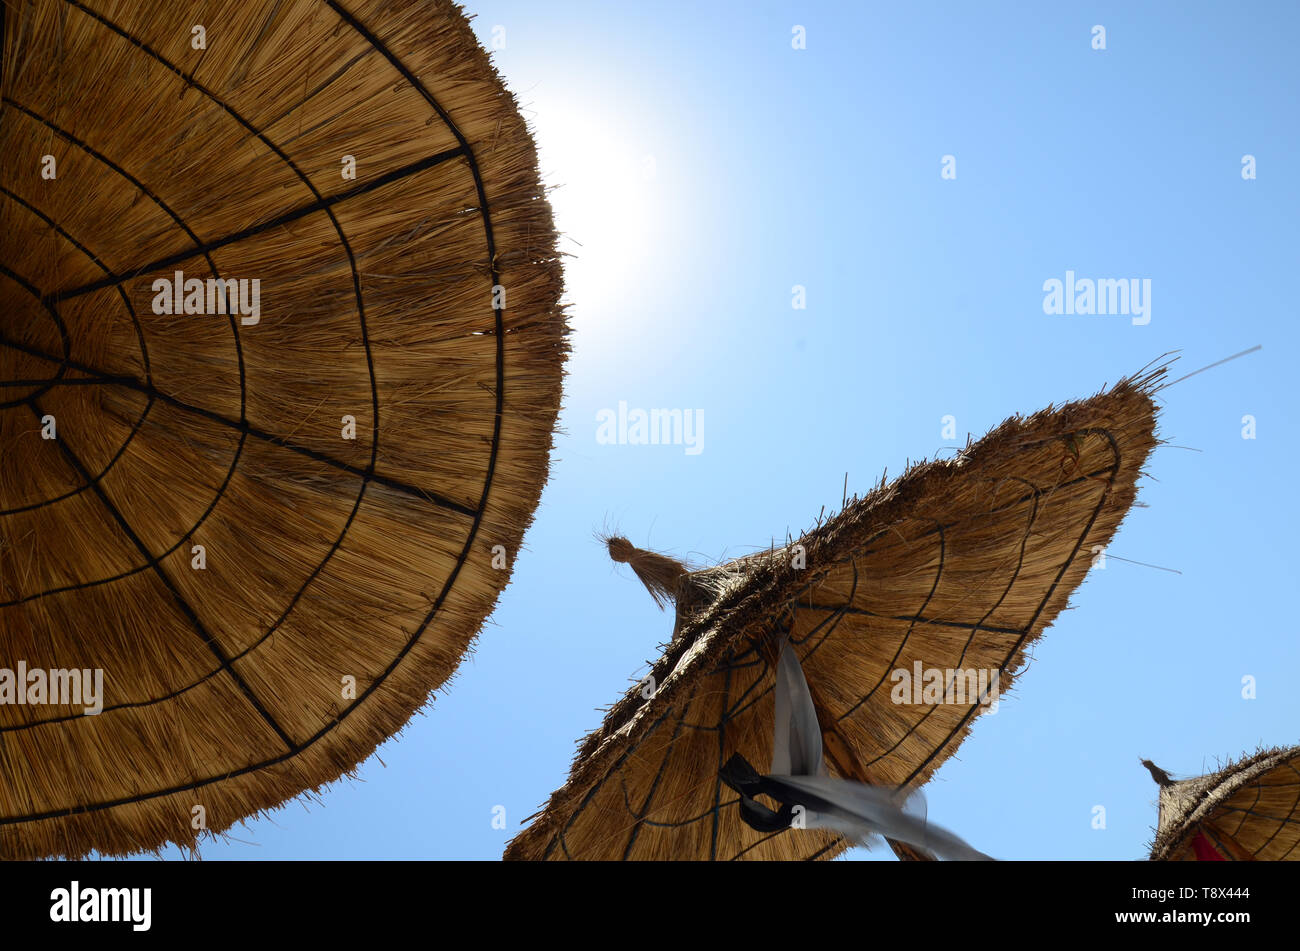 View from under the umbrella on a clear summer day. The sun shines through the straw beach umbrella - Stock Image